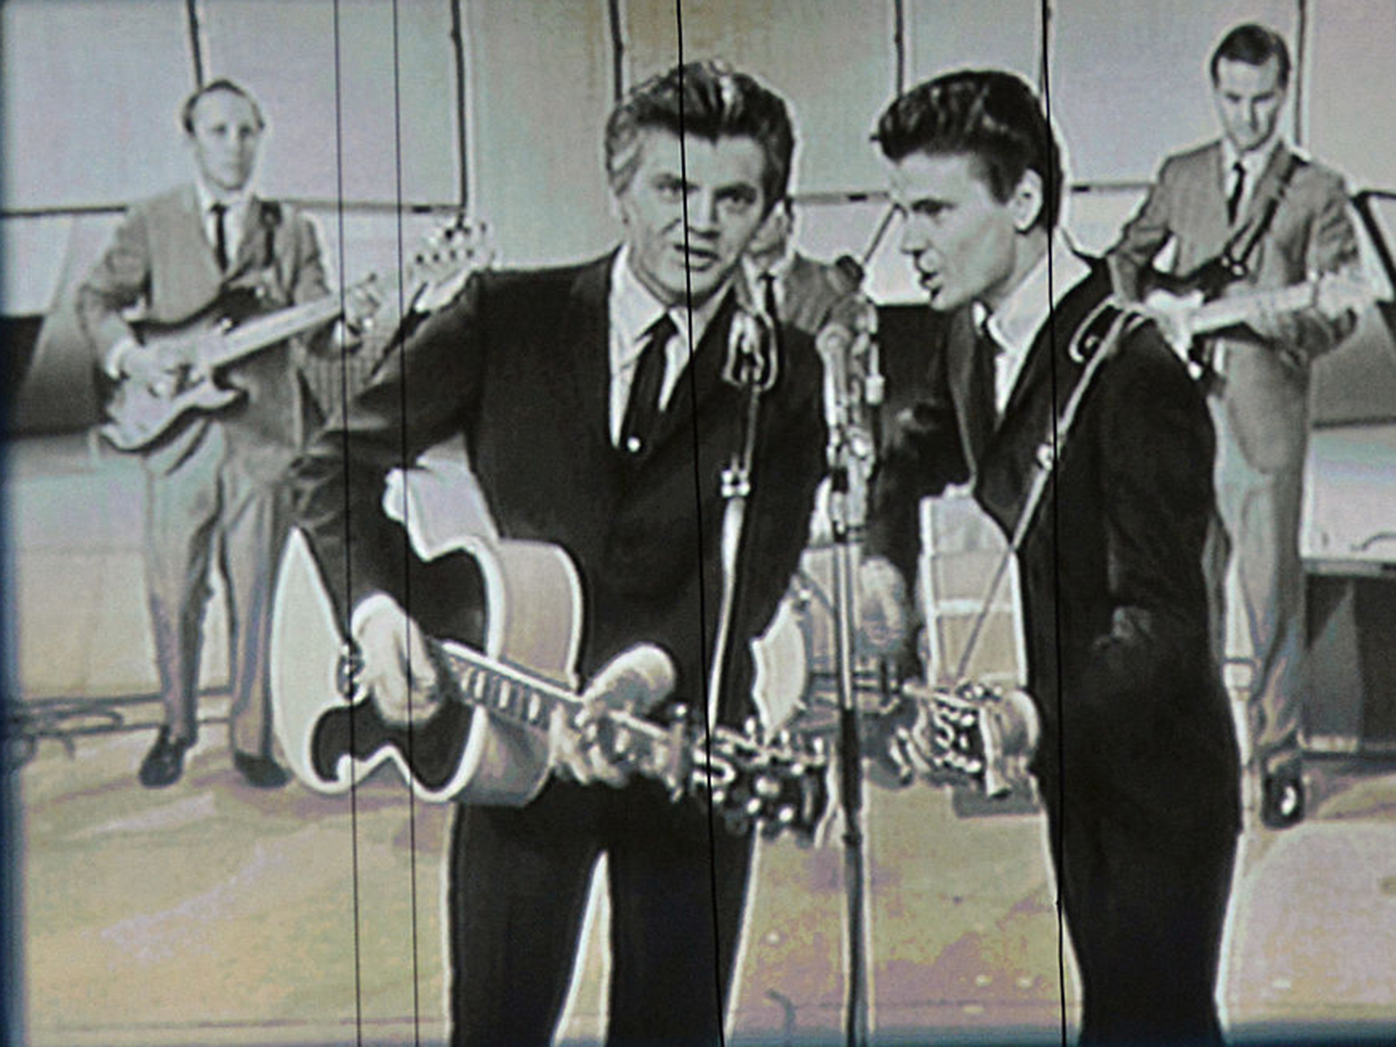 A video still of the Everly Brothers, featuring Phil (left) and Don (right).